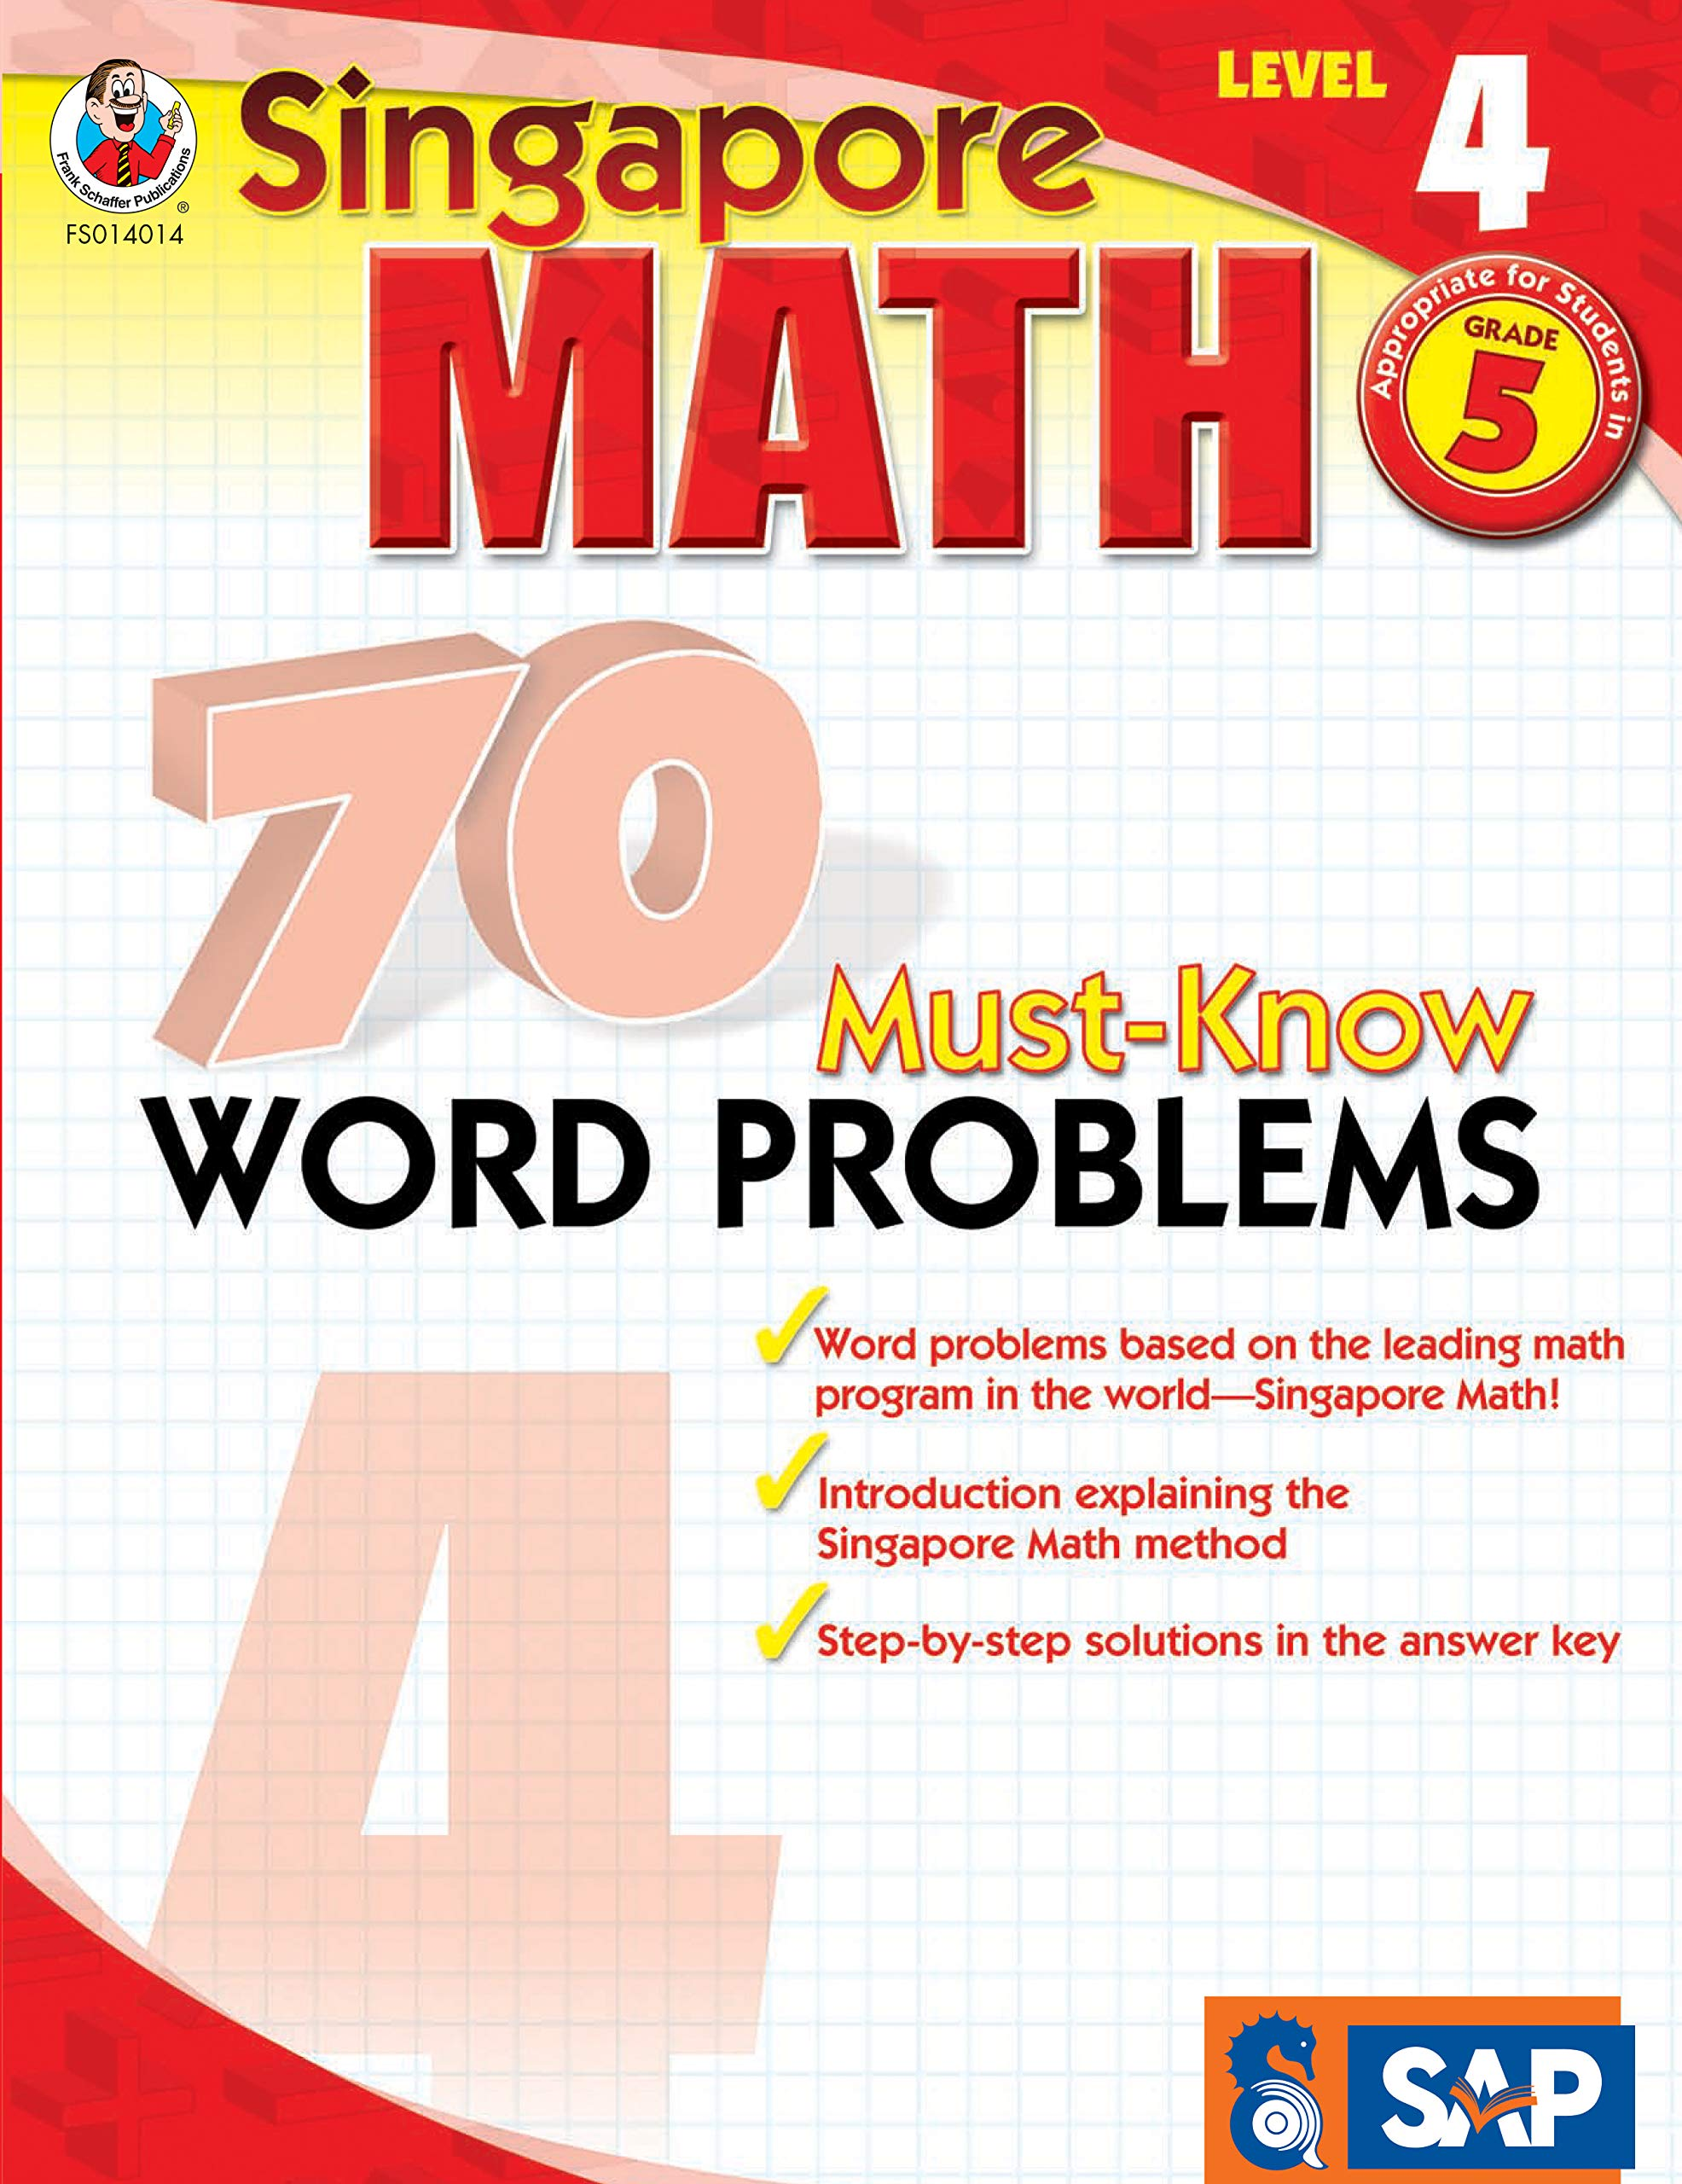 Singapore Math - 70 Must-Know Word Problems Workbook for 5th